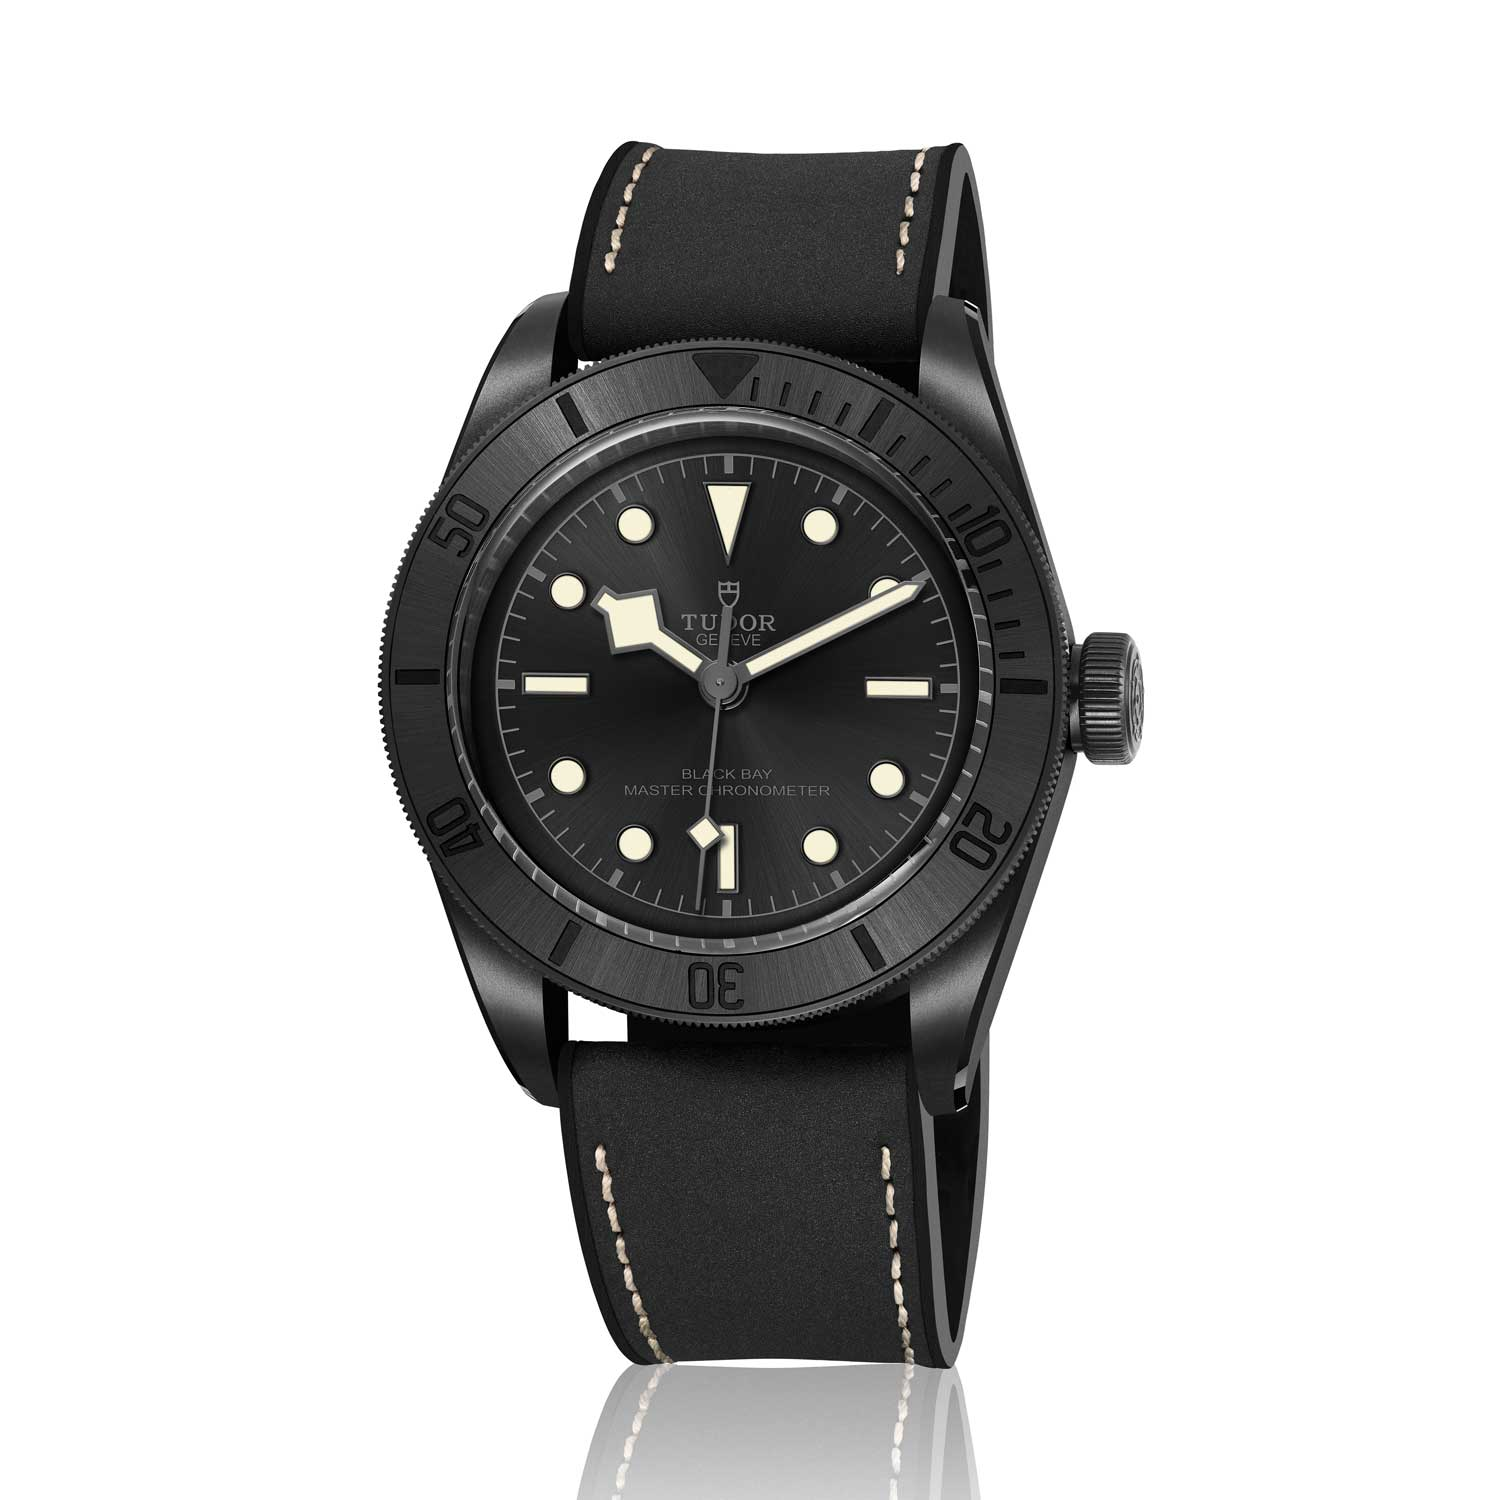 The new Tudor Black Bay Ceramic Master Chronometer comes on a hybrid strap that fuses leather and rubber for a durable yet elegant look.